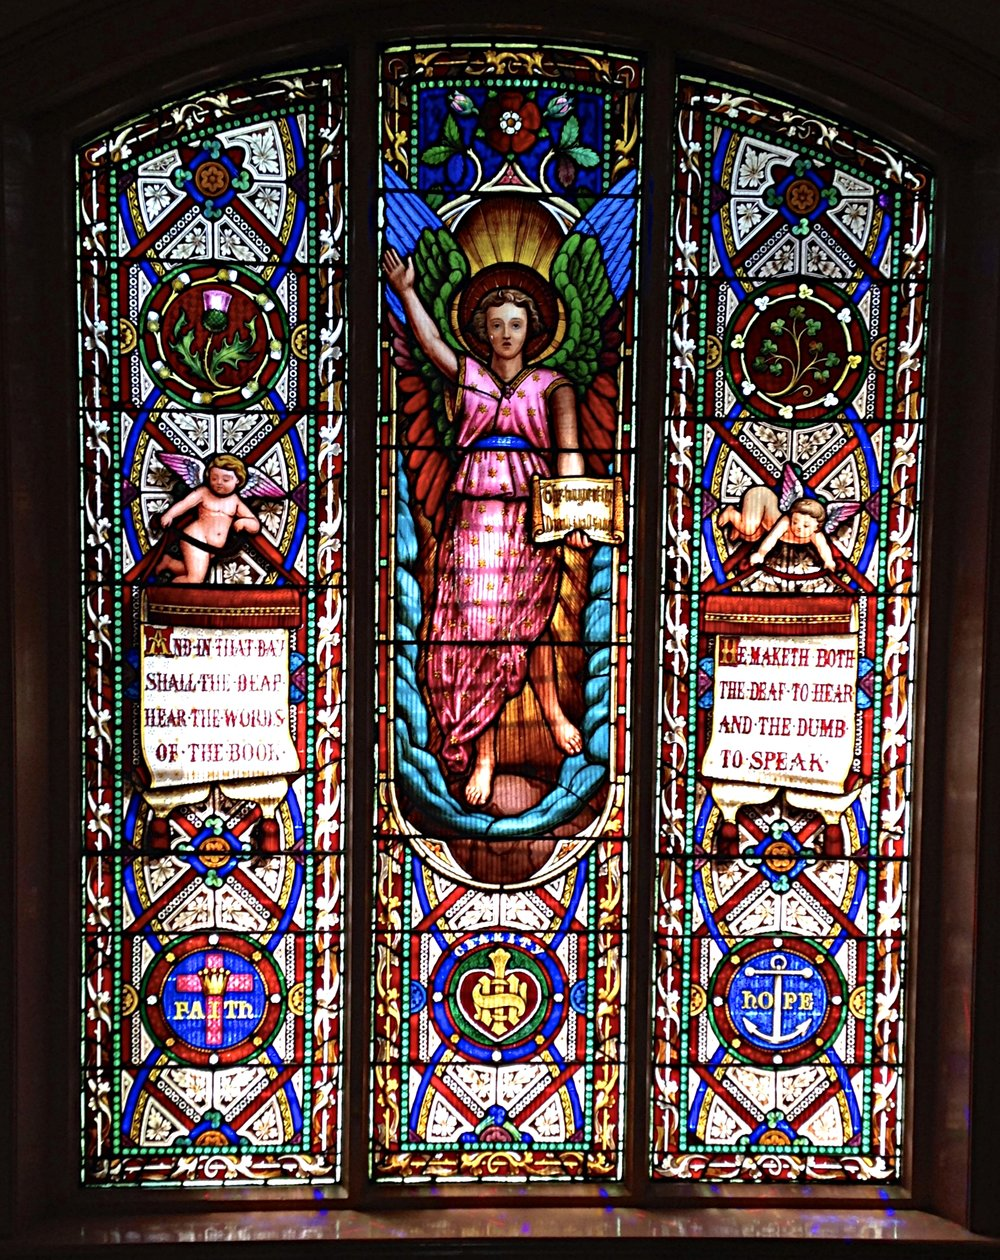 Institutional history - the beautiful Ferguson and Urie leadlight window installed in the stairwell of the former Victorian Deaf and Dumb Institution in 1866, today the Deaf Children Australia in St Kilda Road. Quoting from the Bible it pronounces 'And in that Day, shall the Deaf Hear the Word of the Book' and  'He maketh the Deaf to Hear and the Dumb to Speak'